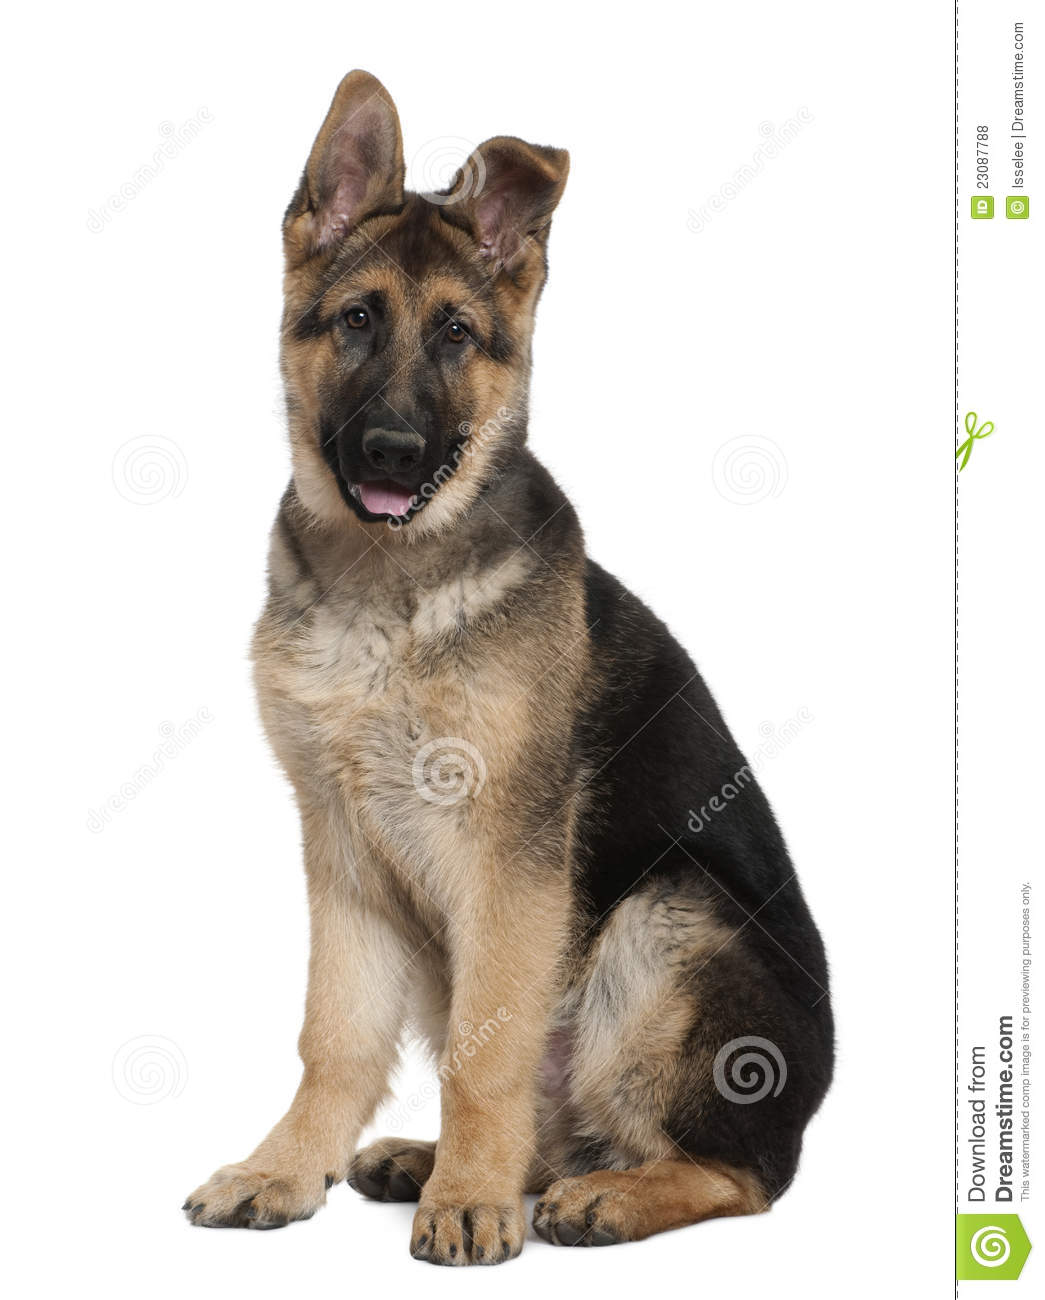 how to train a 3 month old german shepherd puppy